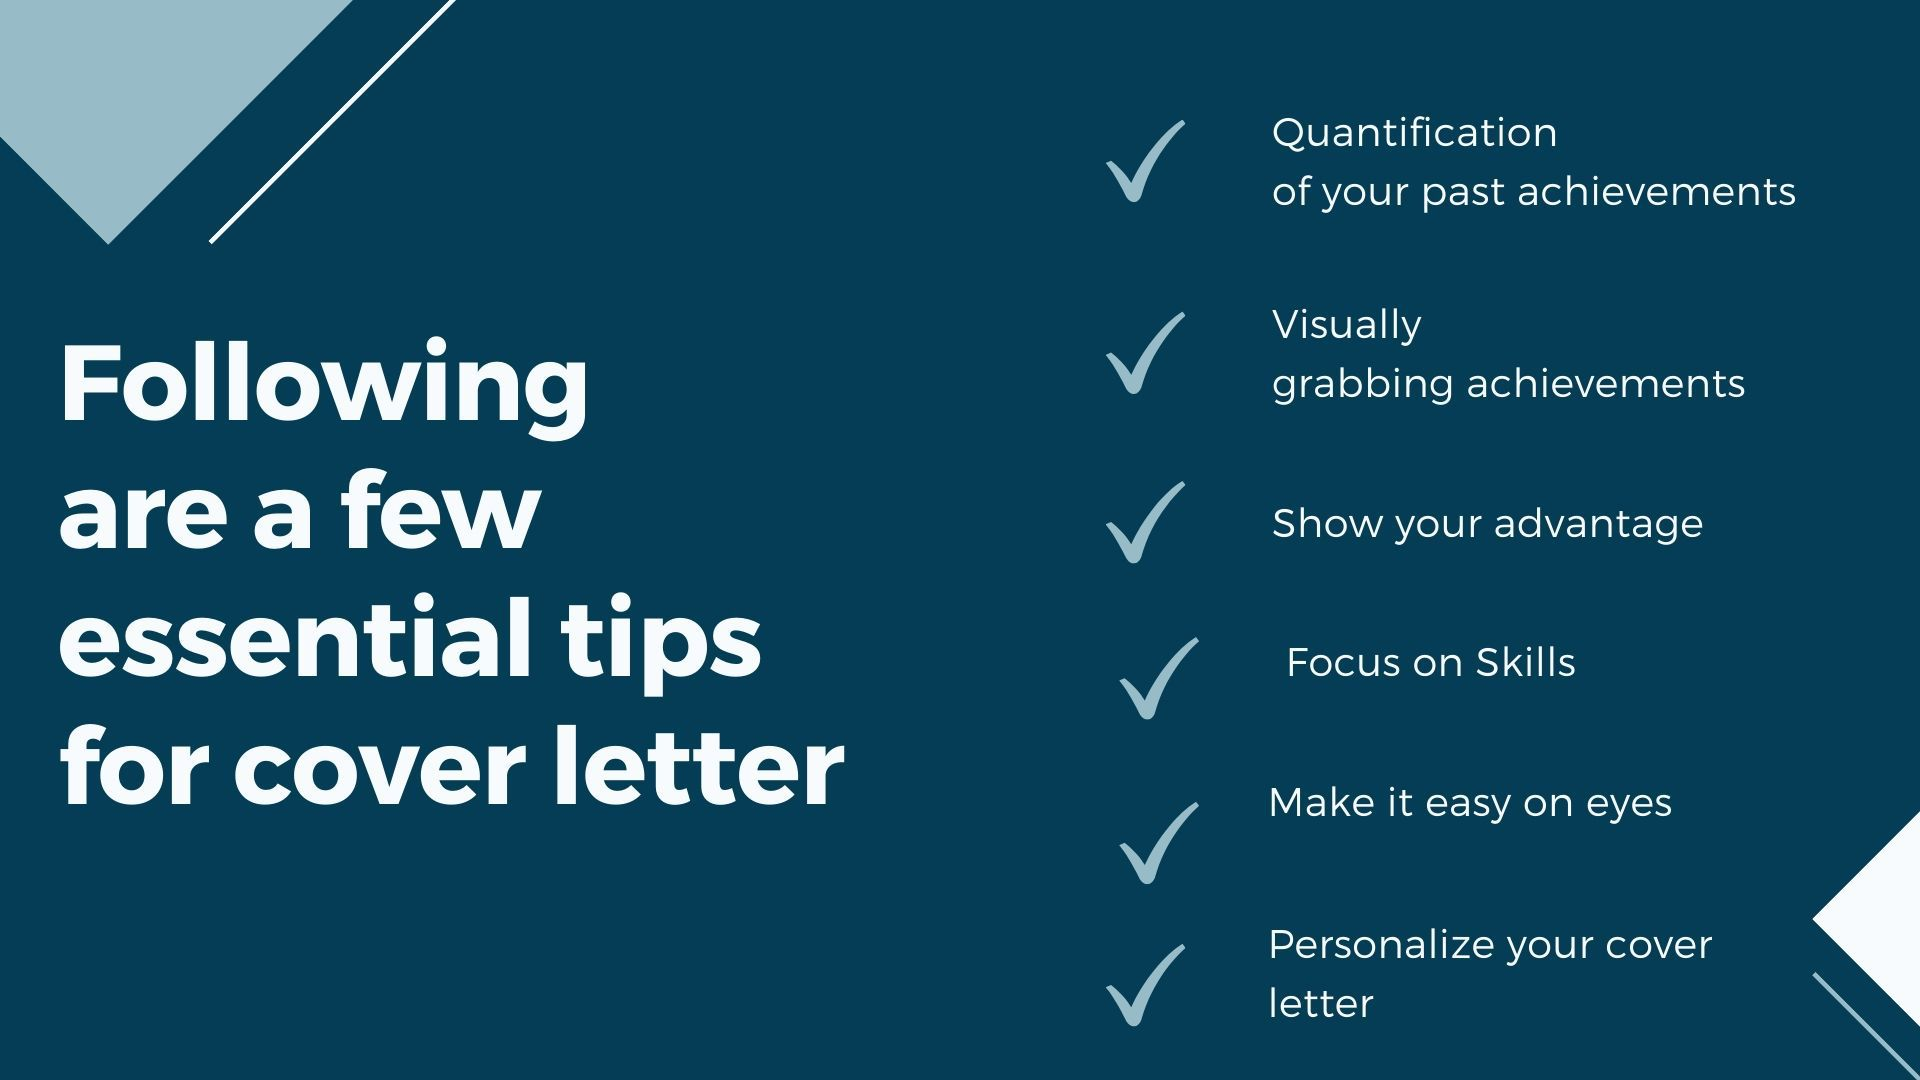 Following are a few essential tips for cover letter